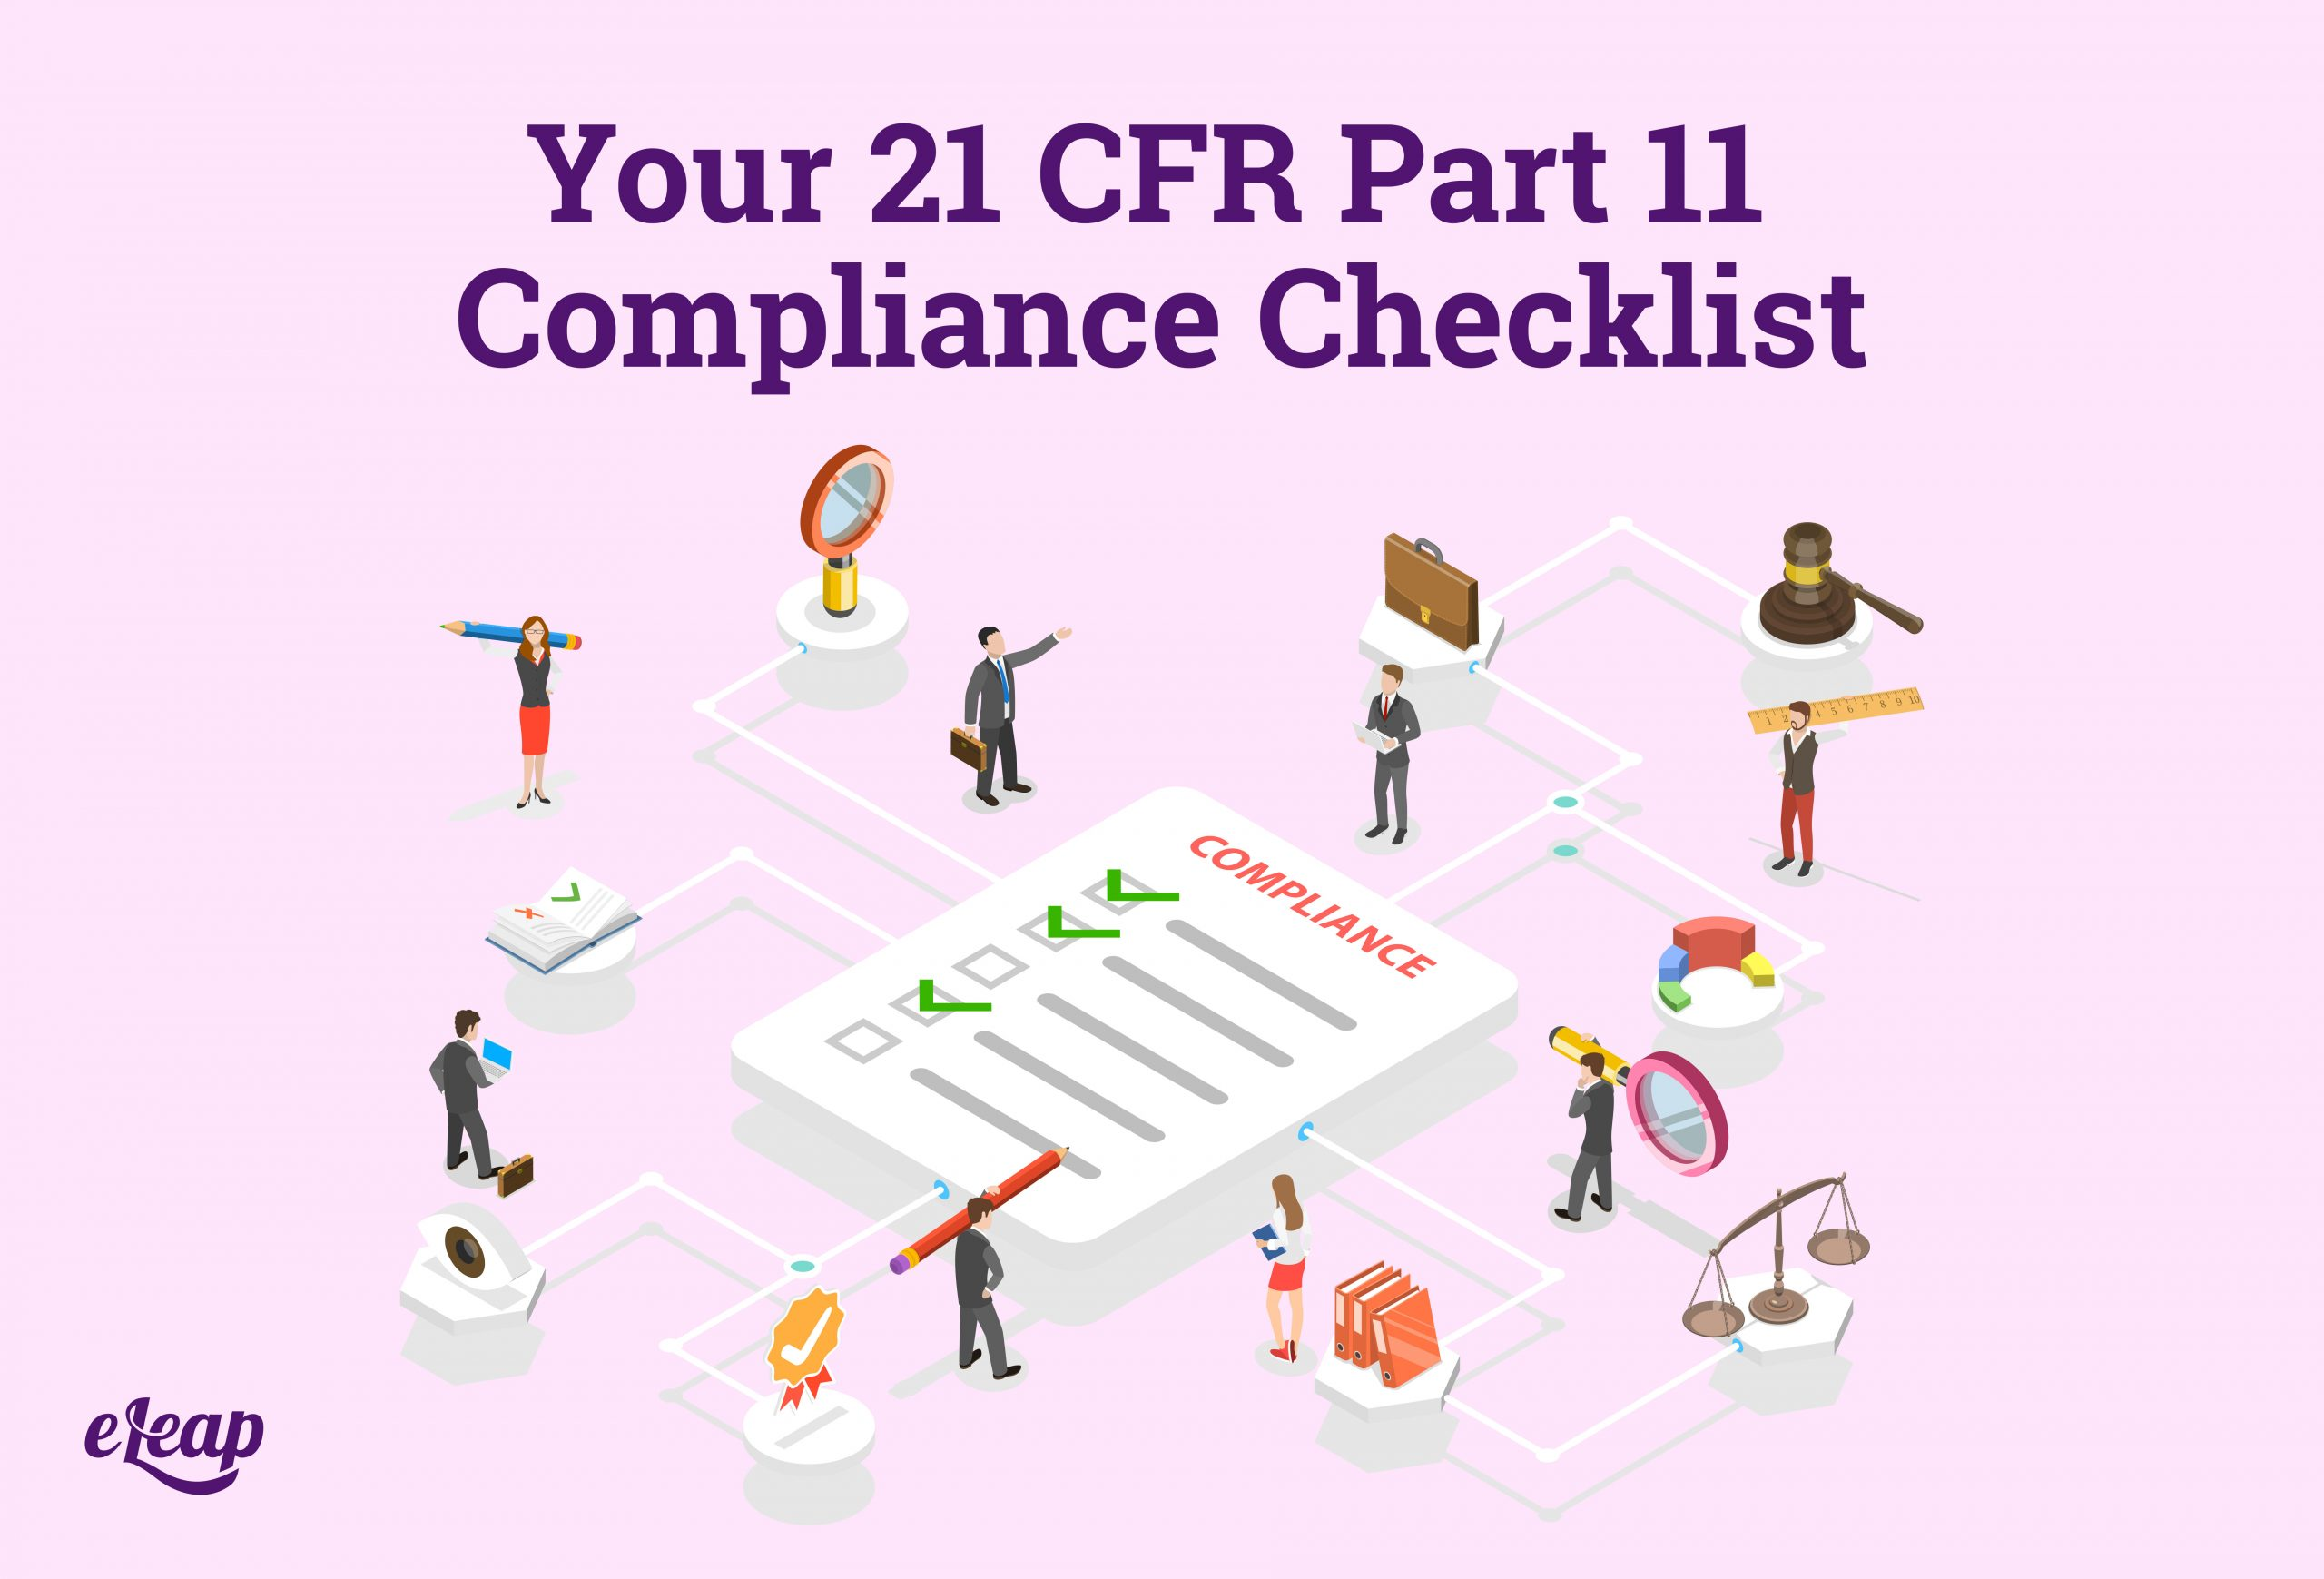 Your 21 CFR Part 11 Compliance Checklist